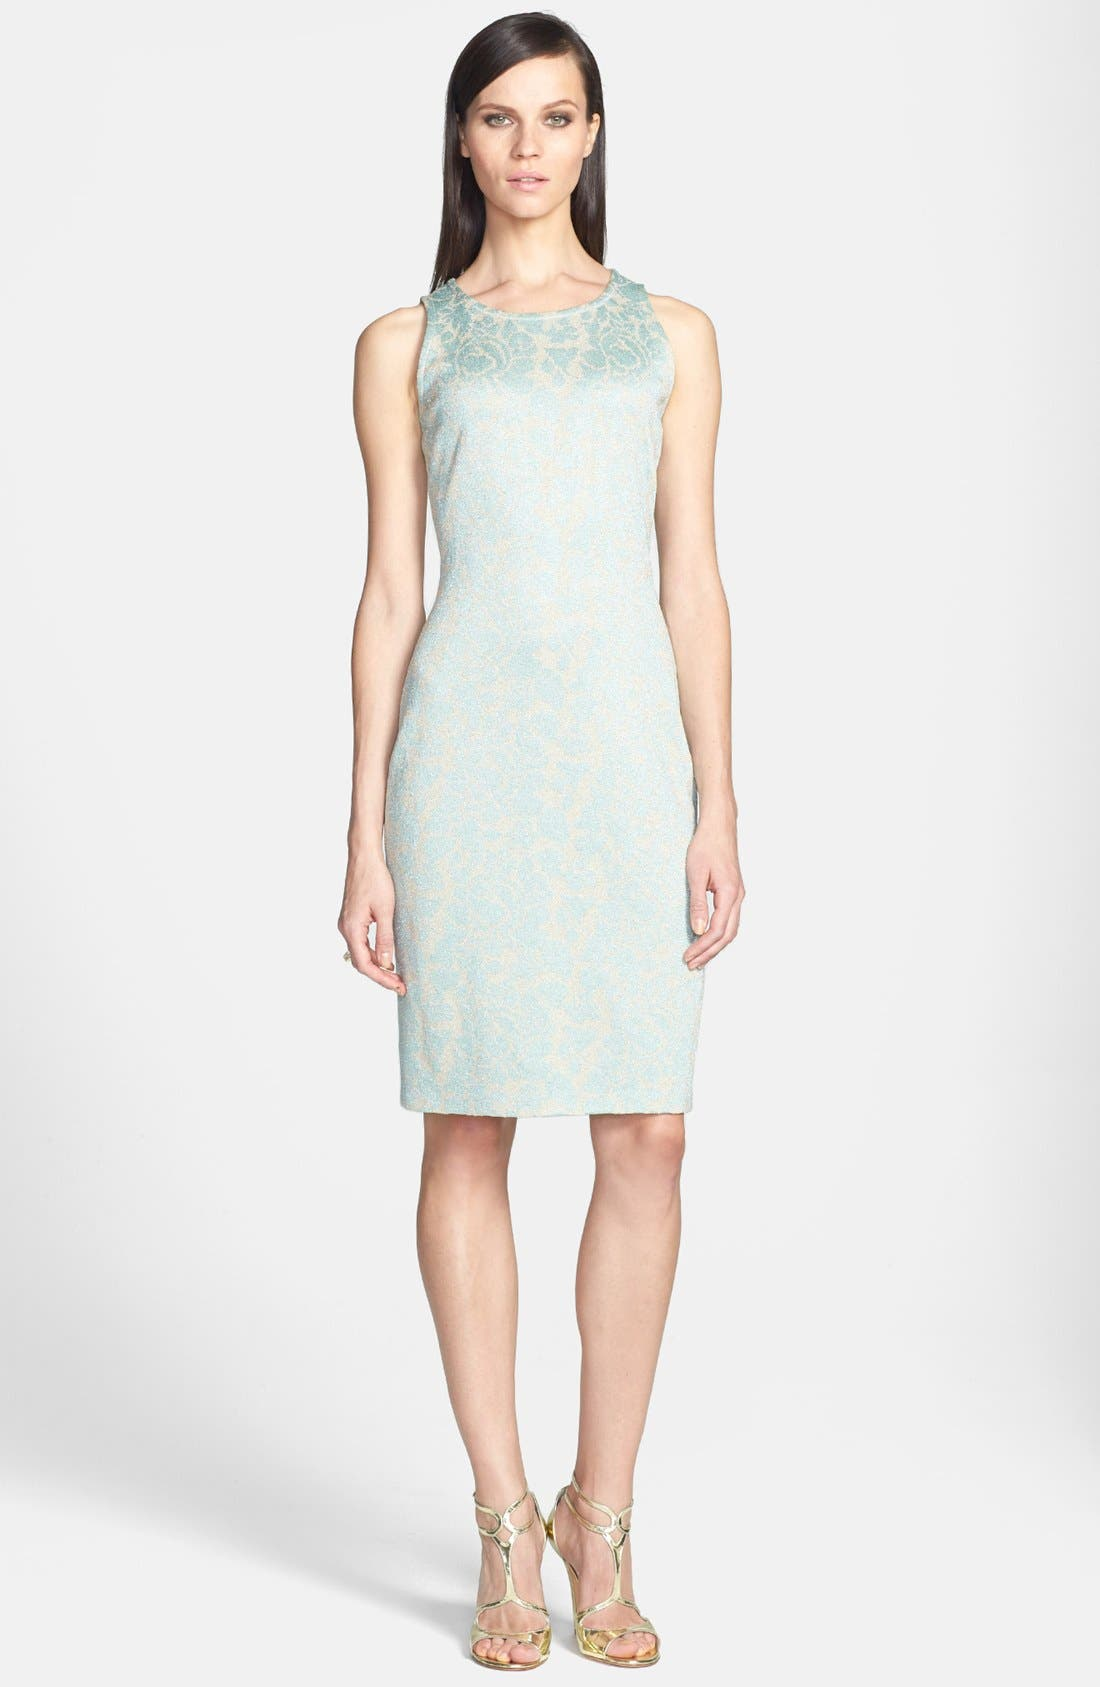 Alternate Image 1 Selected - St. John Collection Metallic Floral Jacquard Knit Sheath Dress